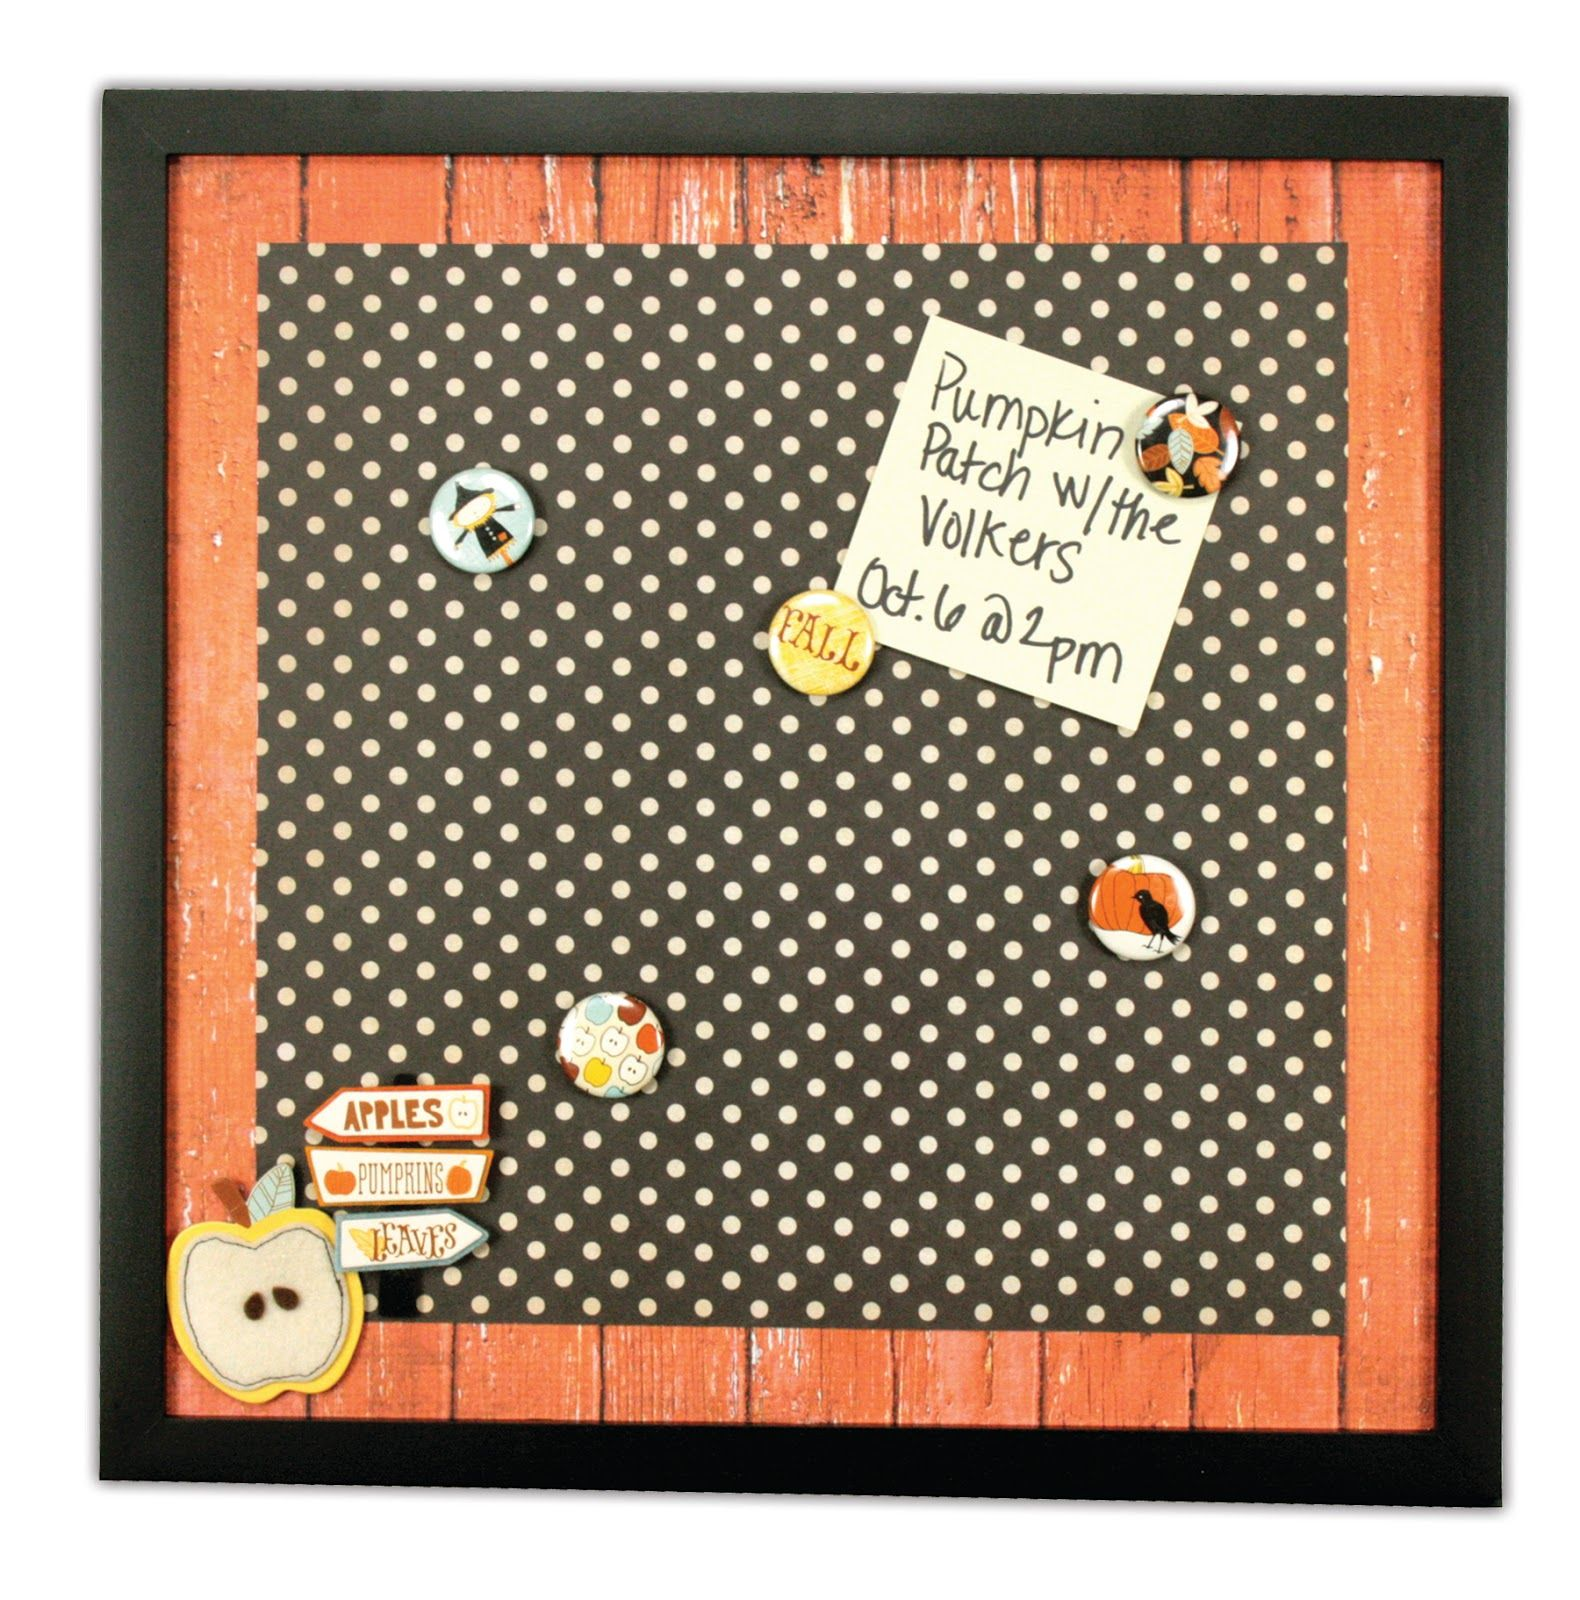 Creepy Crafts Day 2 Pumpkin Patch Magnetic Memo Board Simply Remove Glass From A Frame Then Add A 12x12 Magnetic Sheet And P Craft Day Crafts Pattern Paper